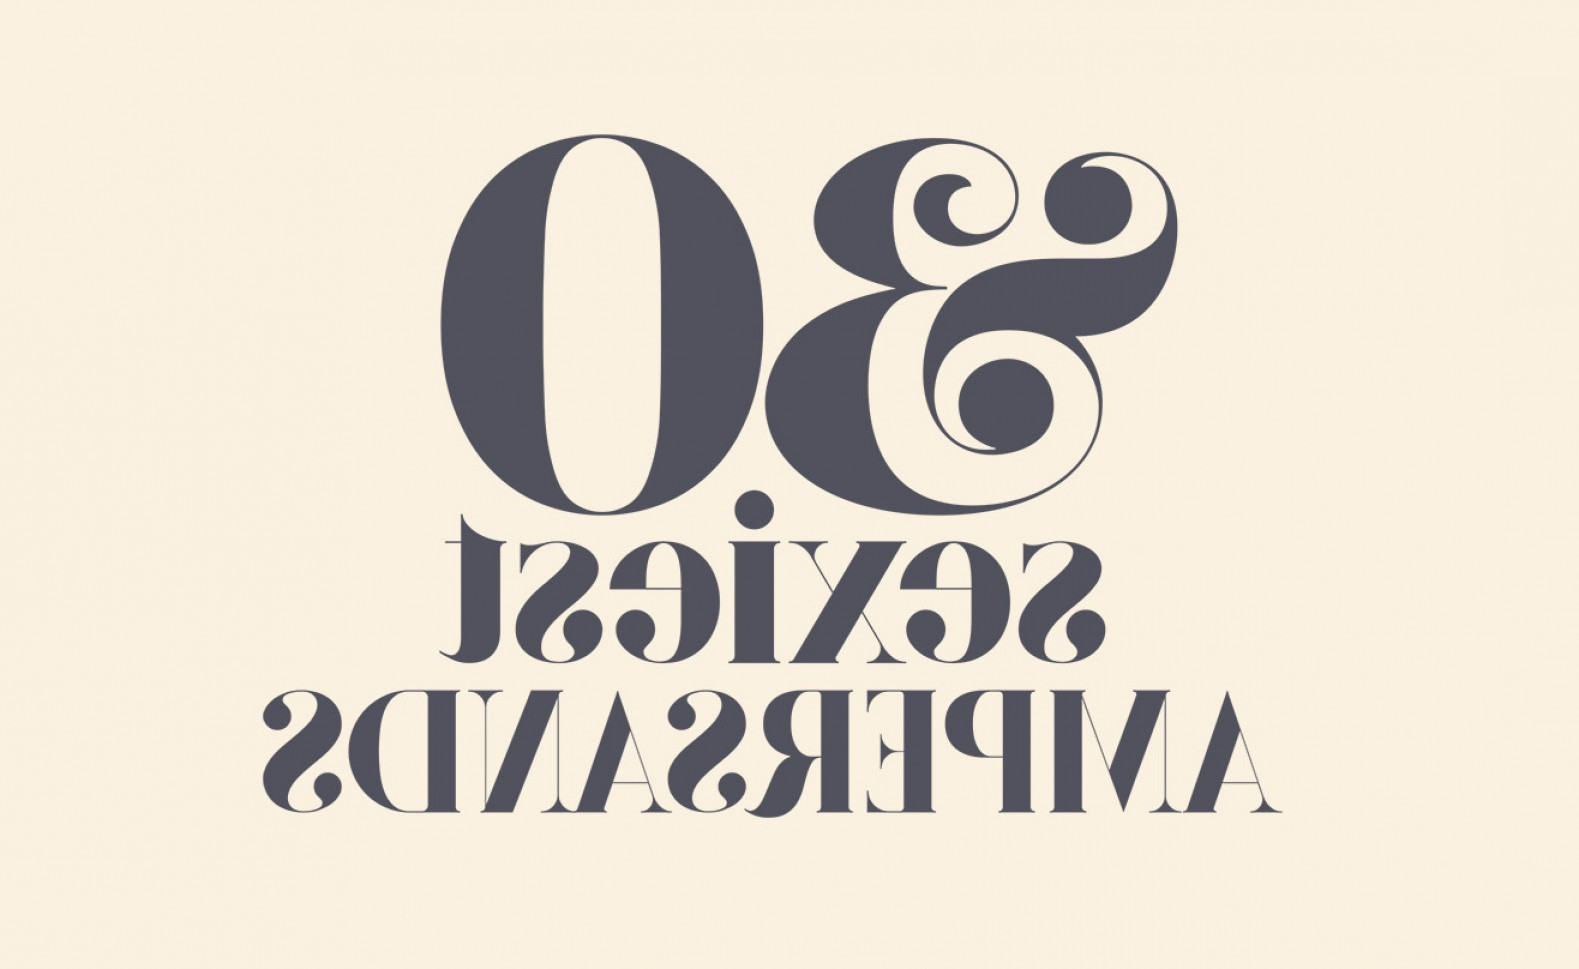 Fancy Ampersand Vector: My Top Fonts With The Sexiest Ampersands